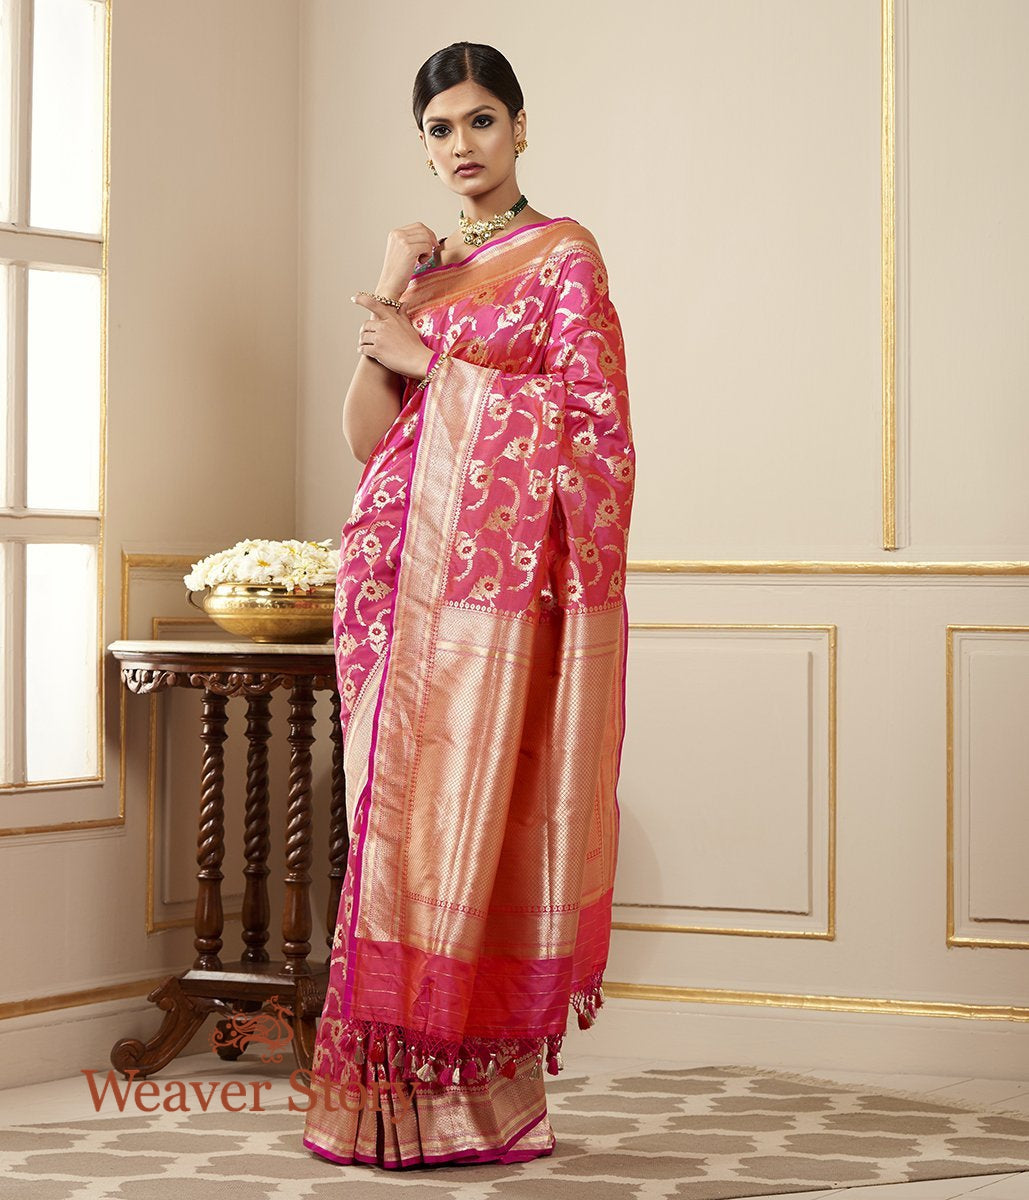 Handwoven Katan Silk Jangla Saree with Meenakari